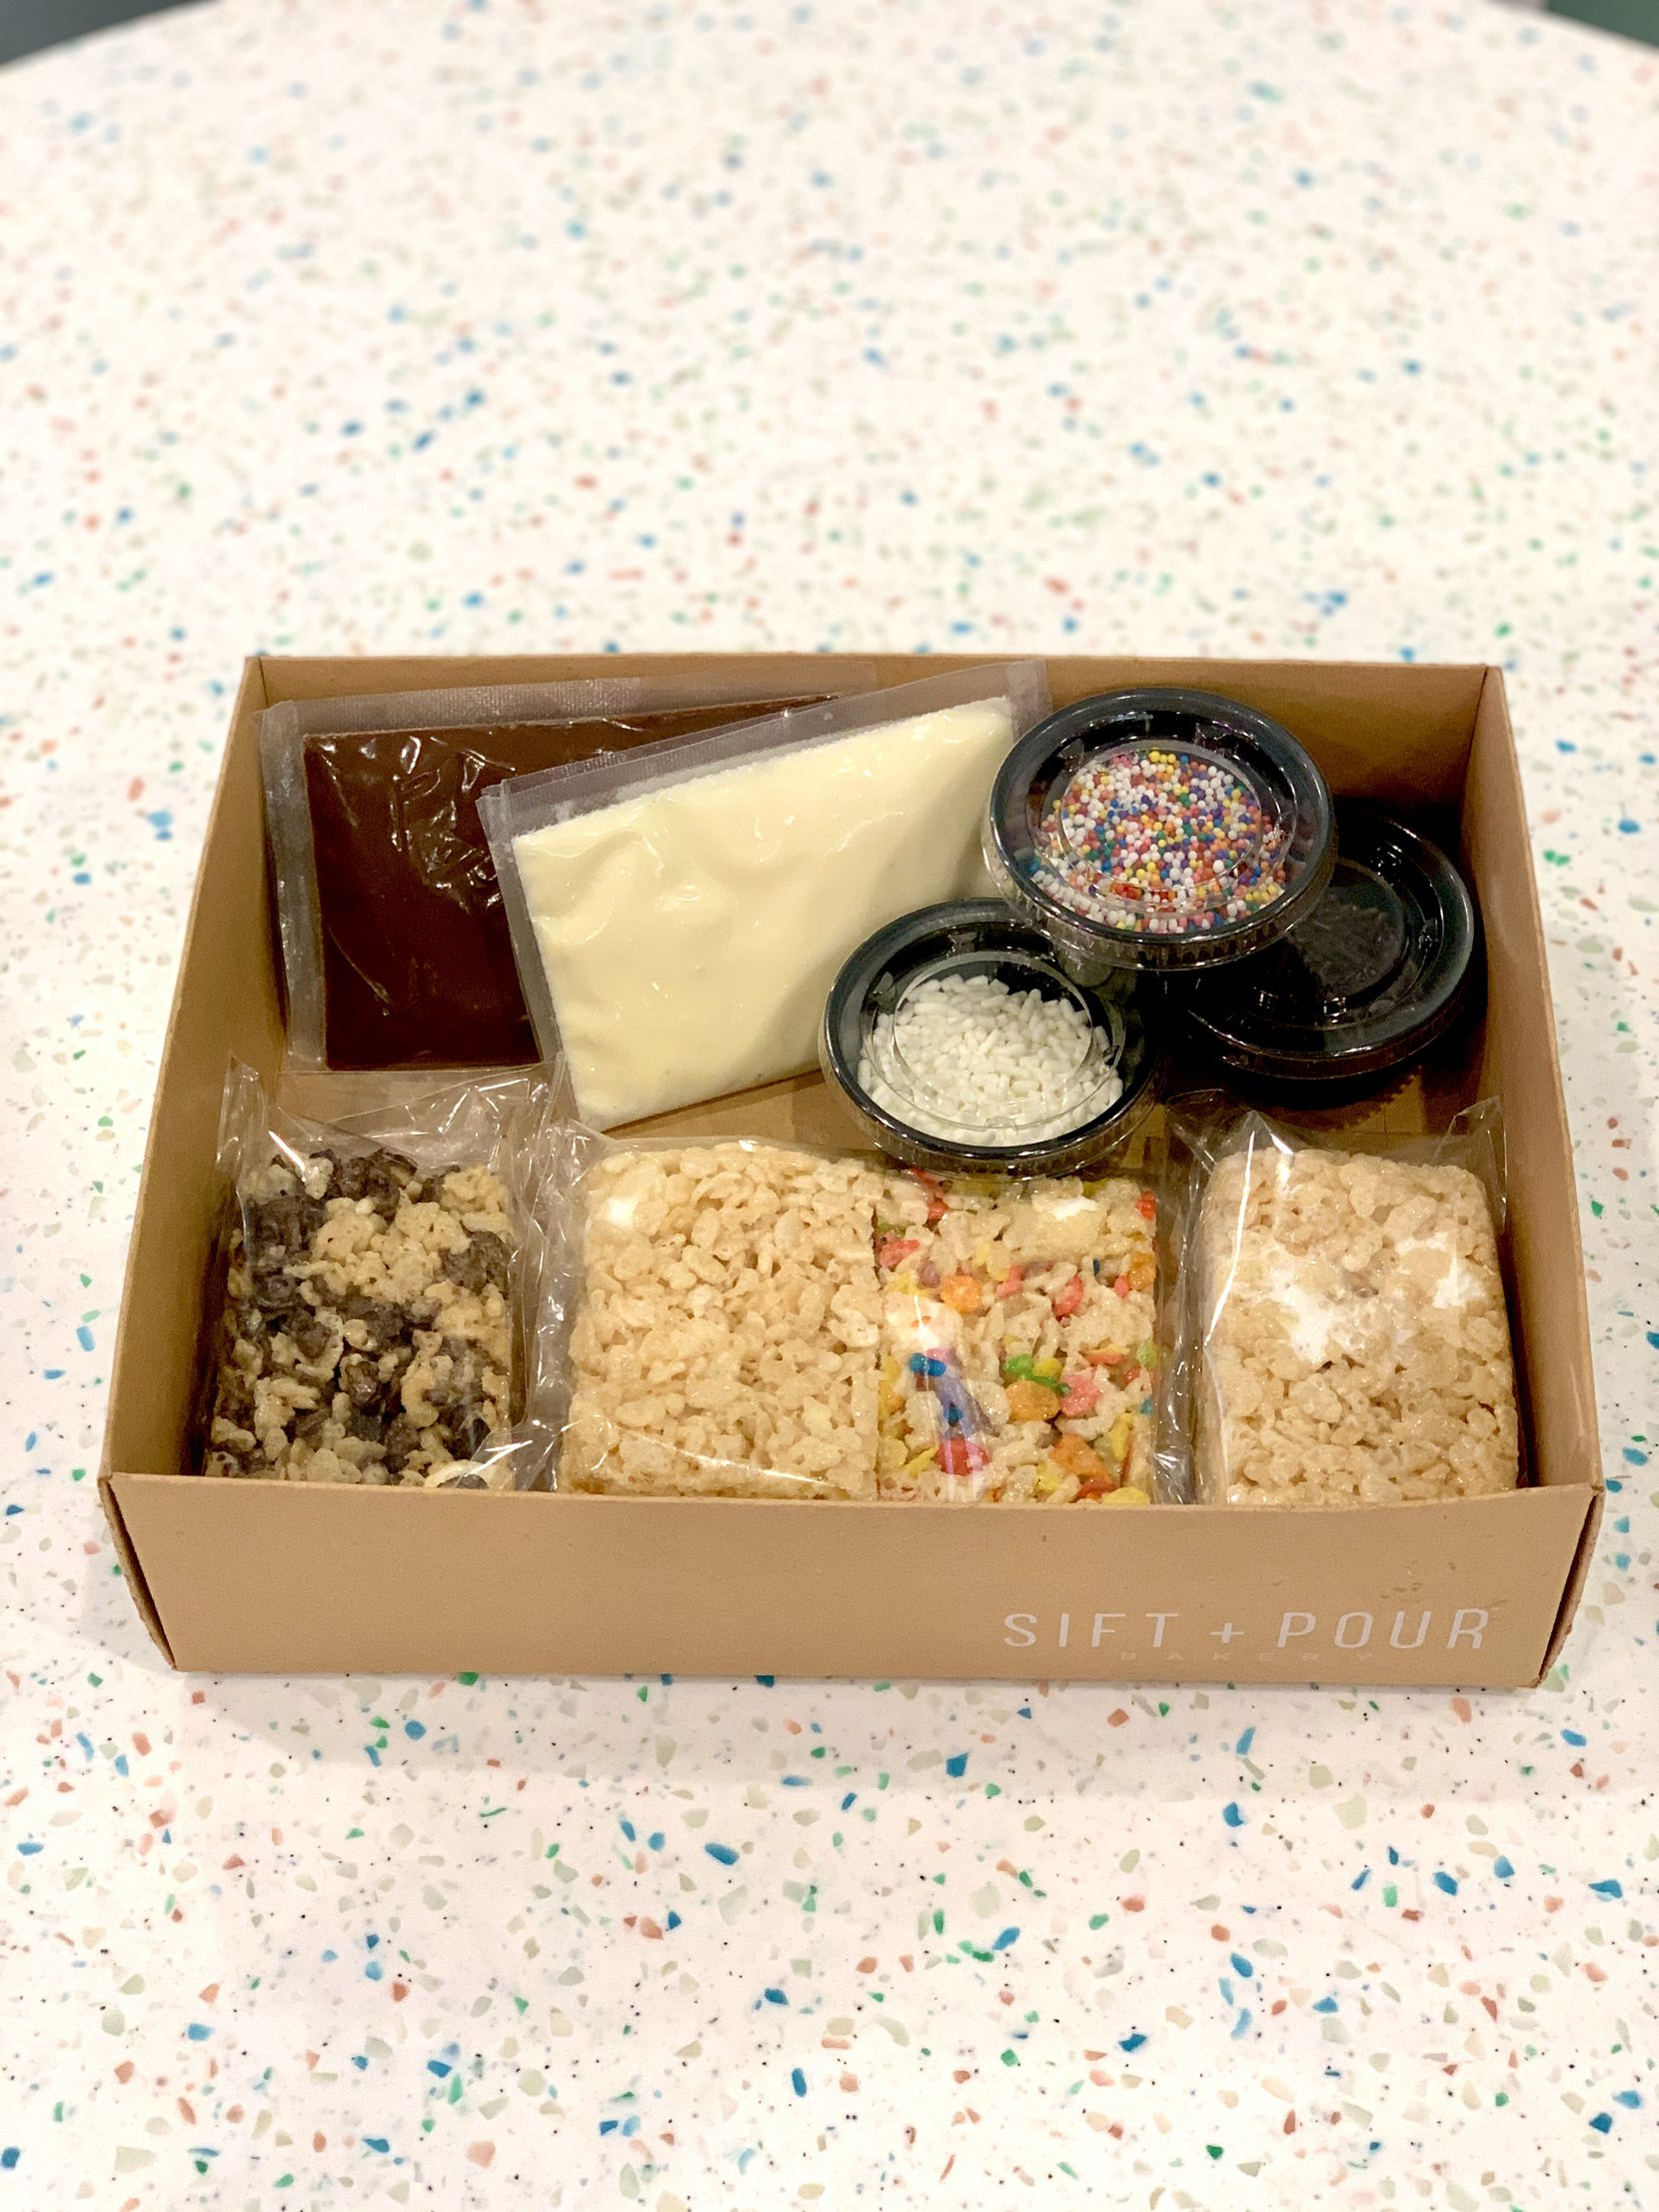 Sift + Pour's survival kit is gluten-free-friendly with four Rice Krispies Treats, chocolate and white chocolate frosting, and sprinkles for $25.